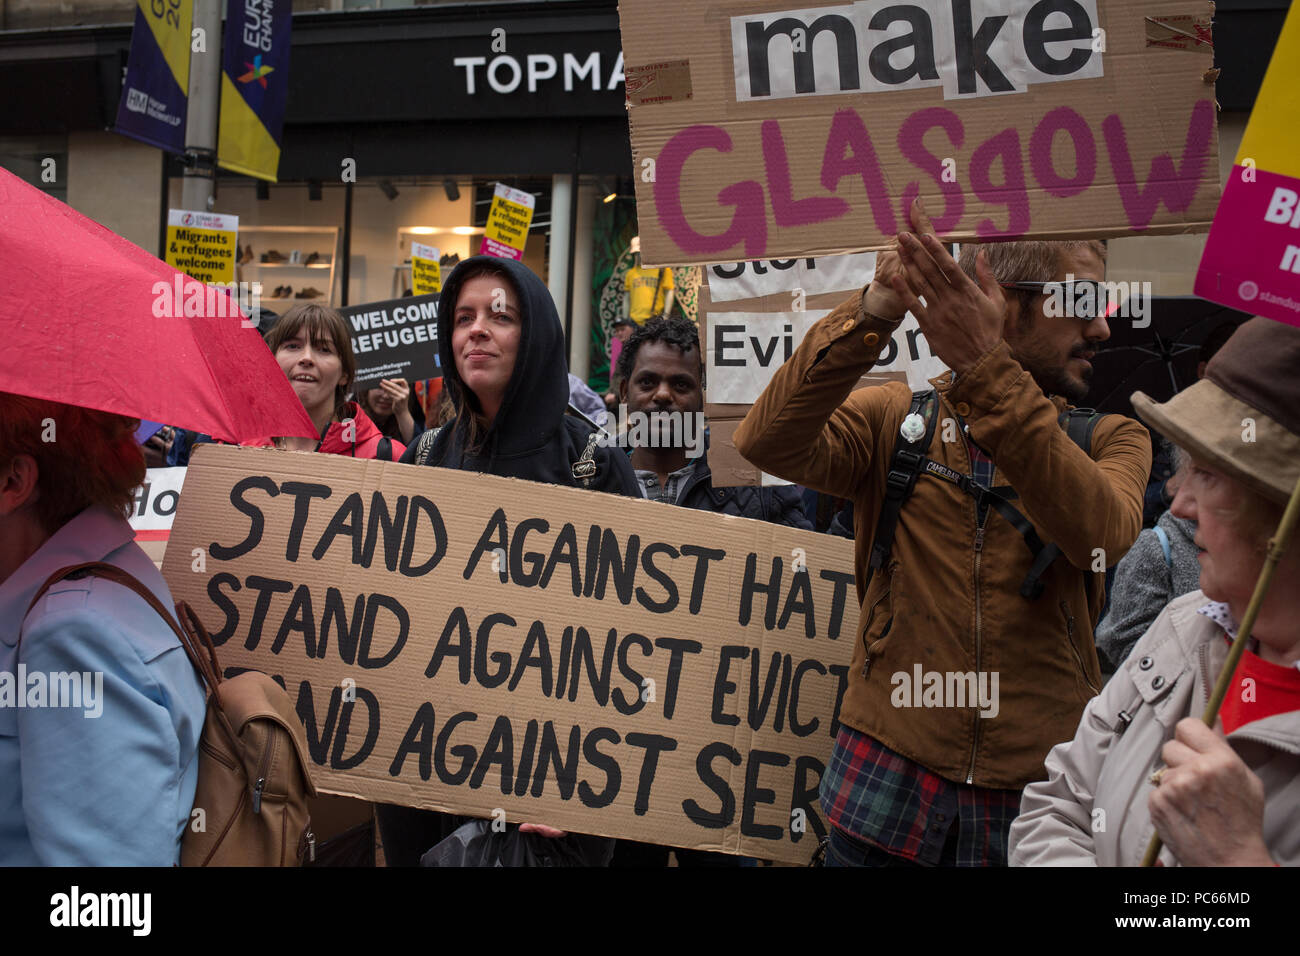 Glasgow, Scotland, on 31 July 2018. Rally in Buchanan Street, in support of refugees facing eviction by private housing company Serco. Serco announced this week that they would begin to evict asylum seekers who have had their application for refugee status rejected by the Home Office. Up to 300 refugees are facing imminent eviction. Image Credit: Jeremy Sutton-Hibbert/ Alamy News. - Stock Image